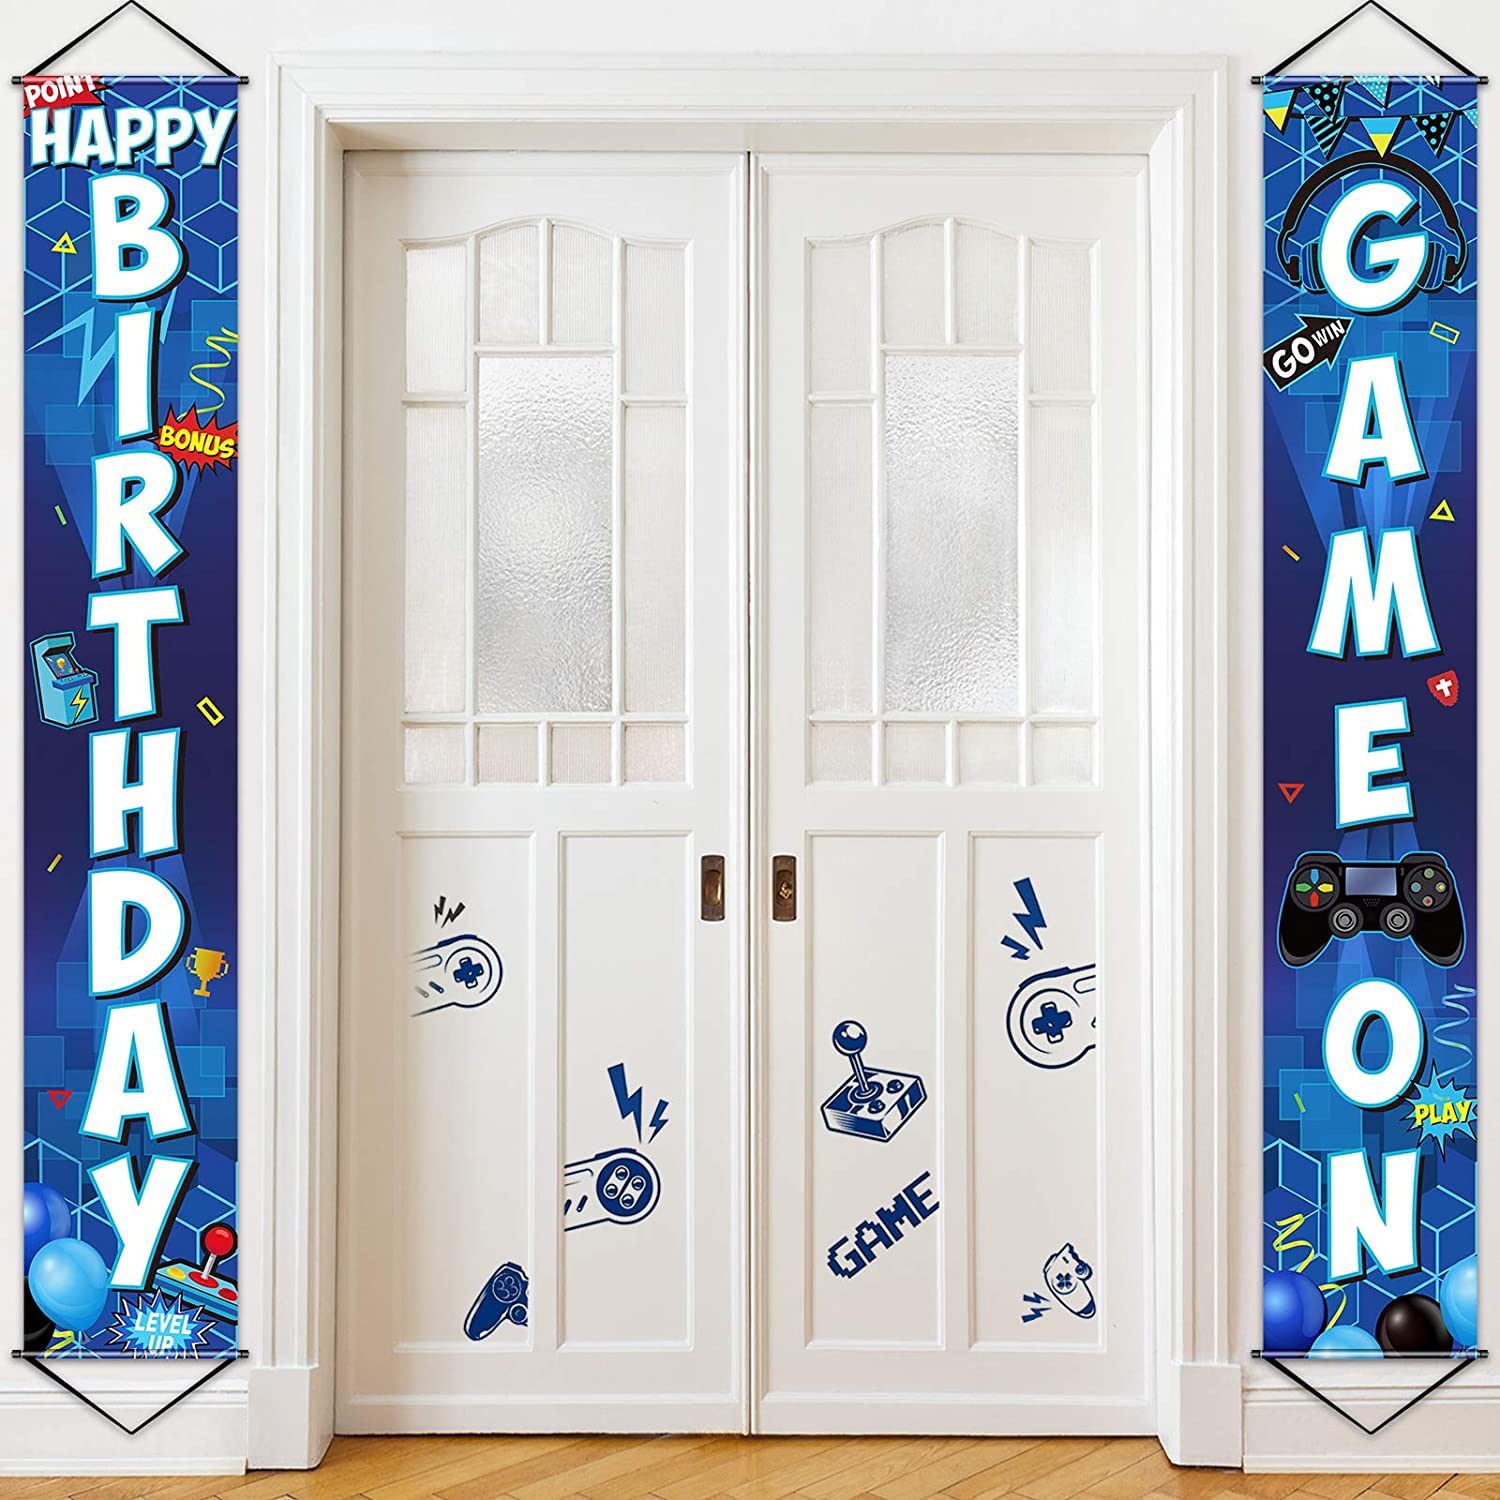 Game On Balloon Banner Video Game Party Decorations, Game Controller Door Sign Happy Birthday Backdrop Banners Miner Gamer Birthday Party Background Block Night Decoration (Blue)